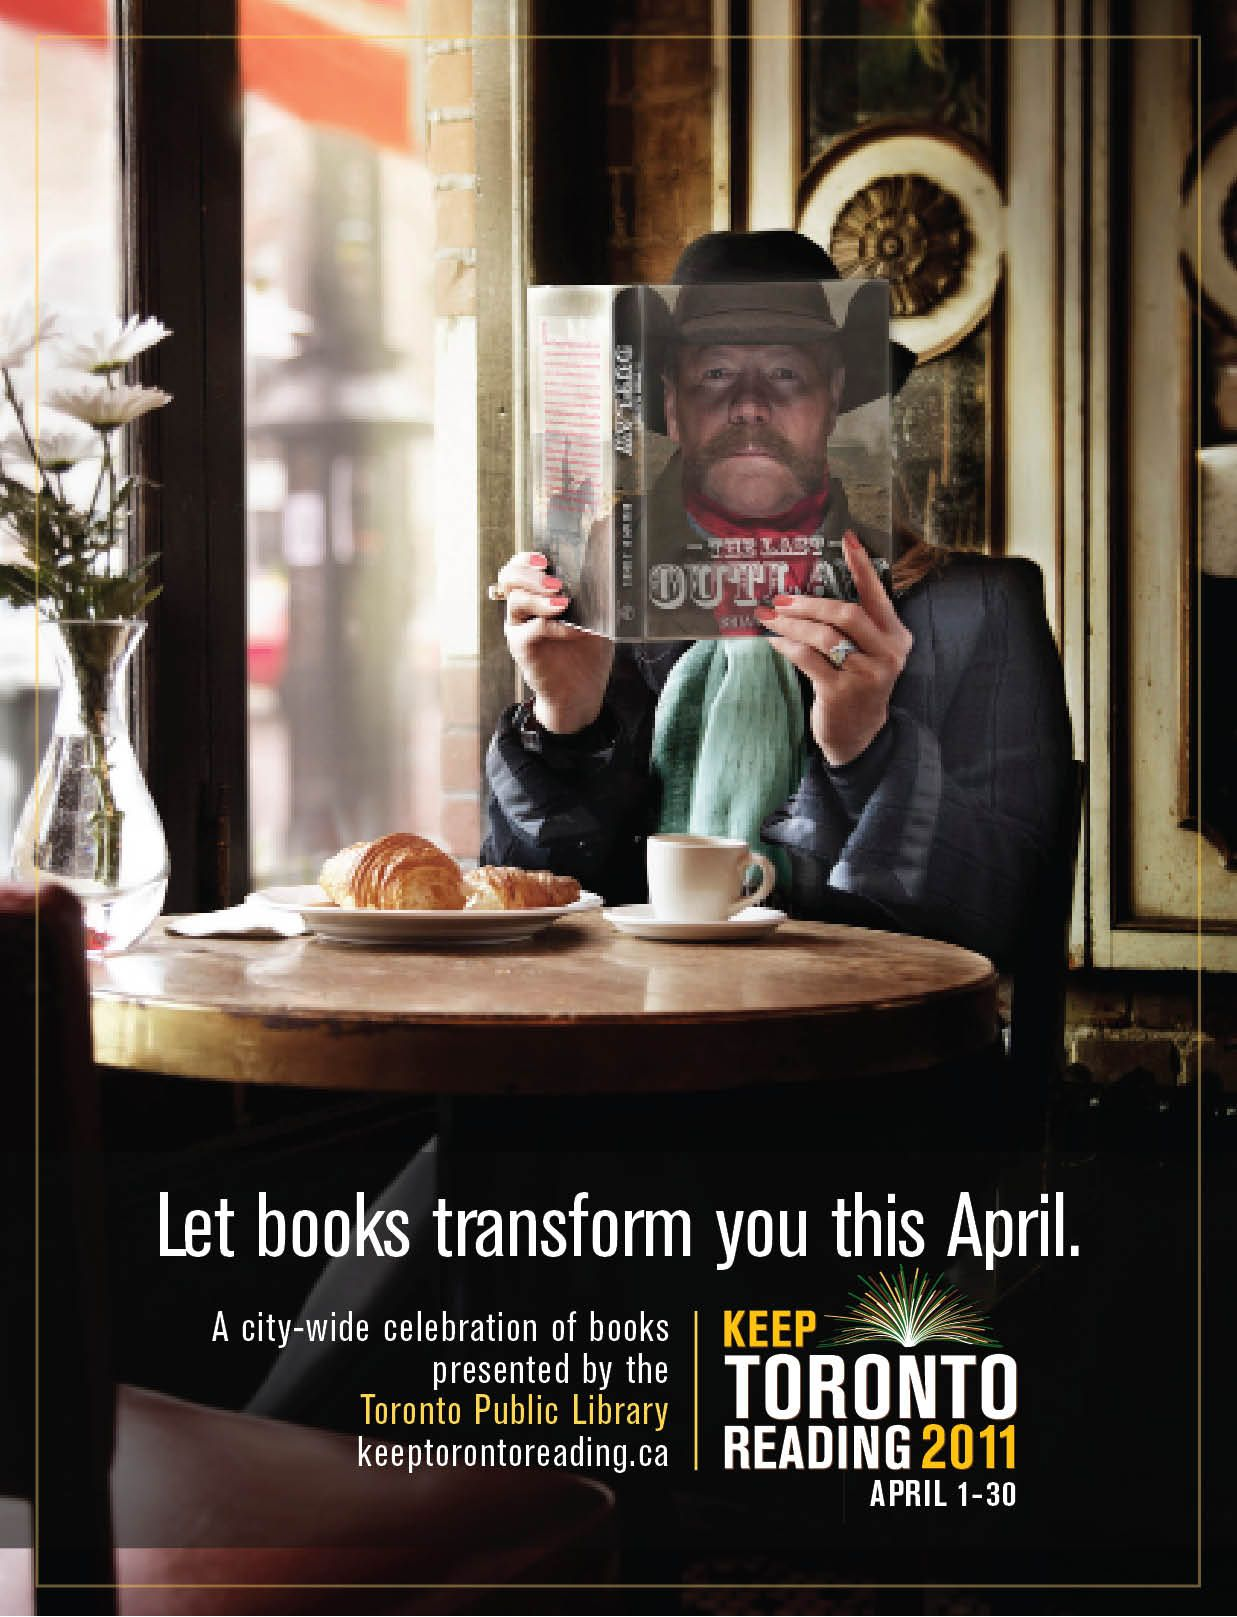 Index of library images illusions best - Transit Poster We Created For The Toronto Public Library S Keep Toronto Reading Campaign Photography By Public Librariesillusionstorontostudents